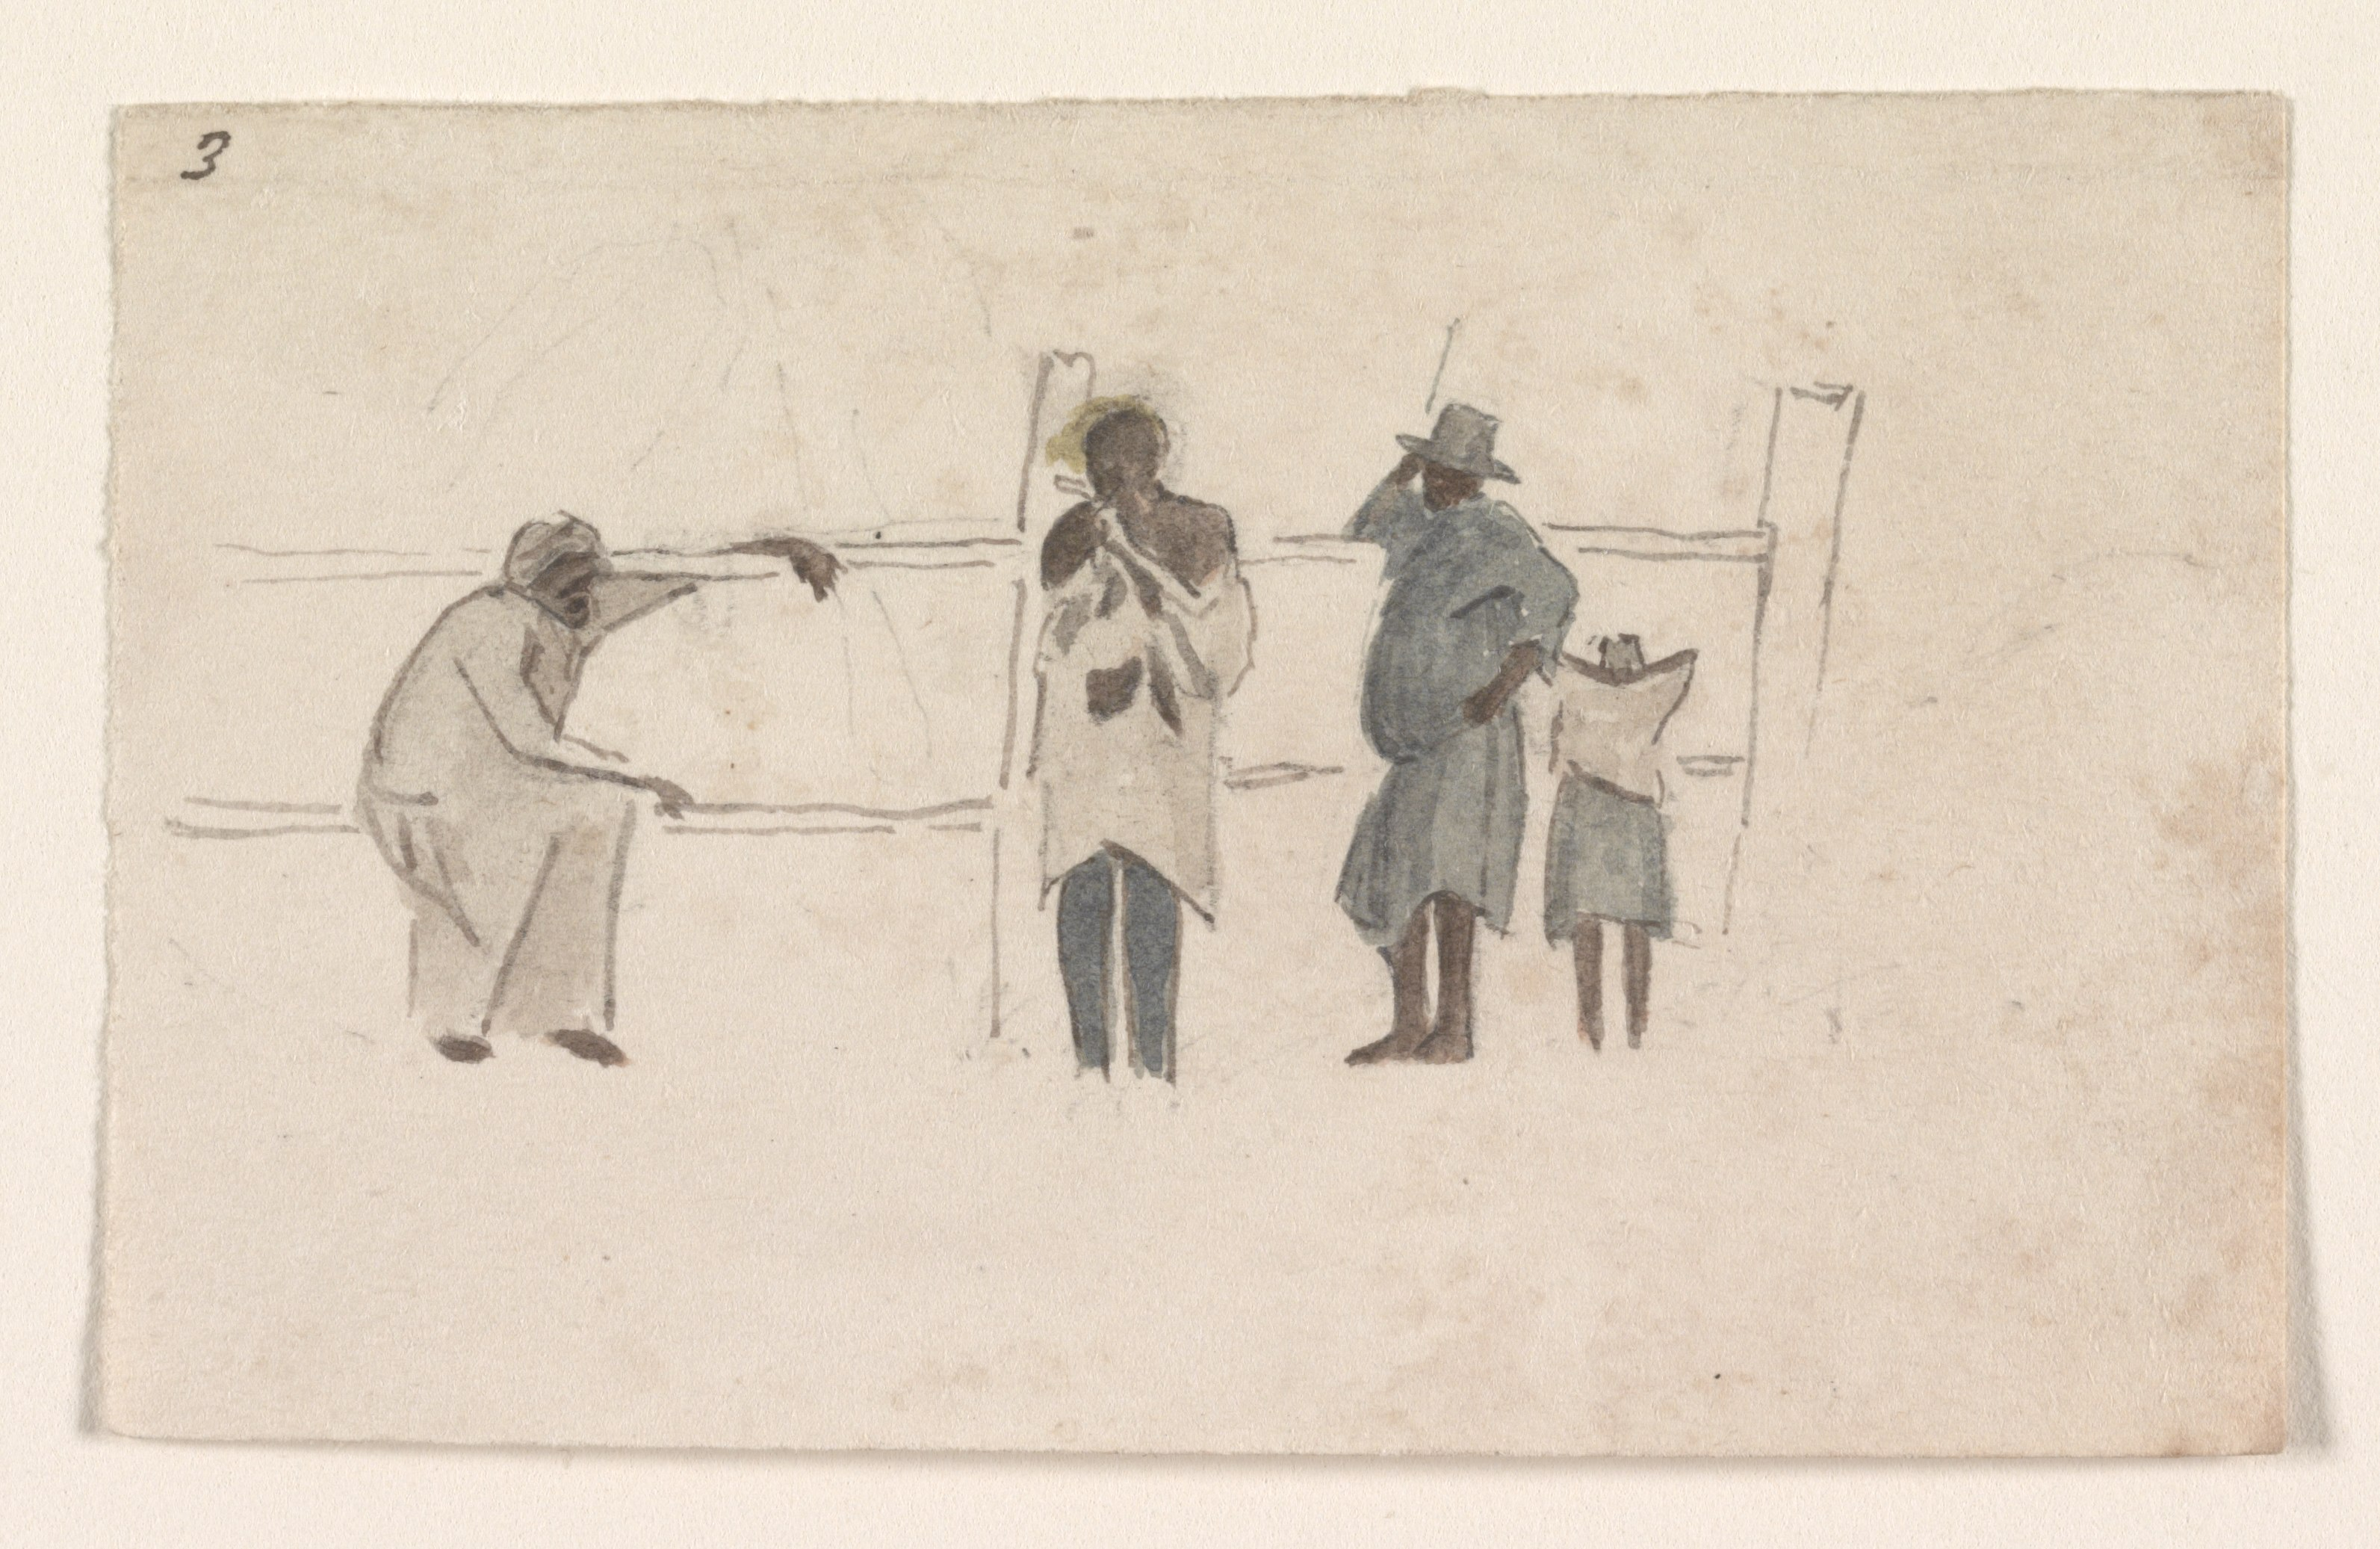 File:Four Jamaican figures talking at a fence LCCN2010652217